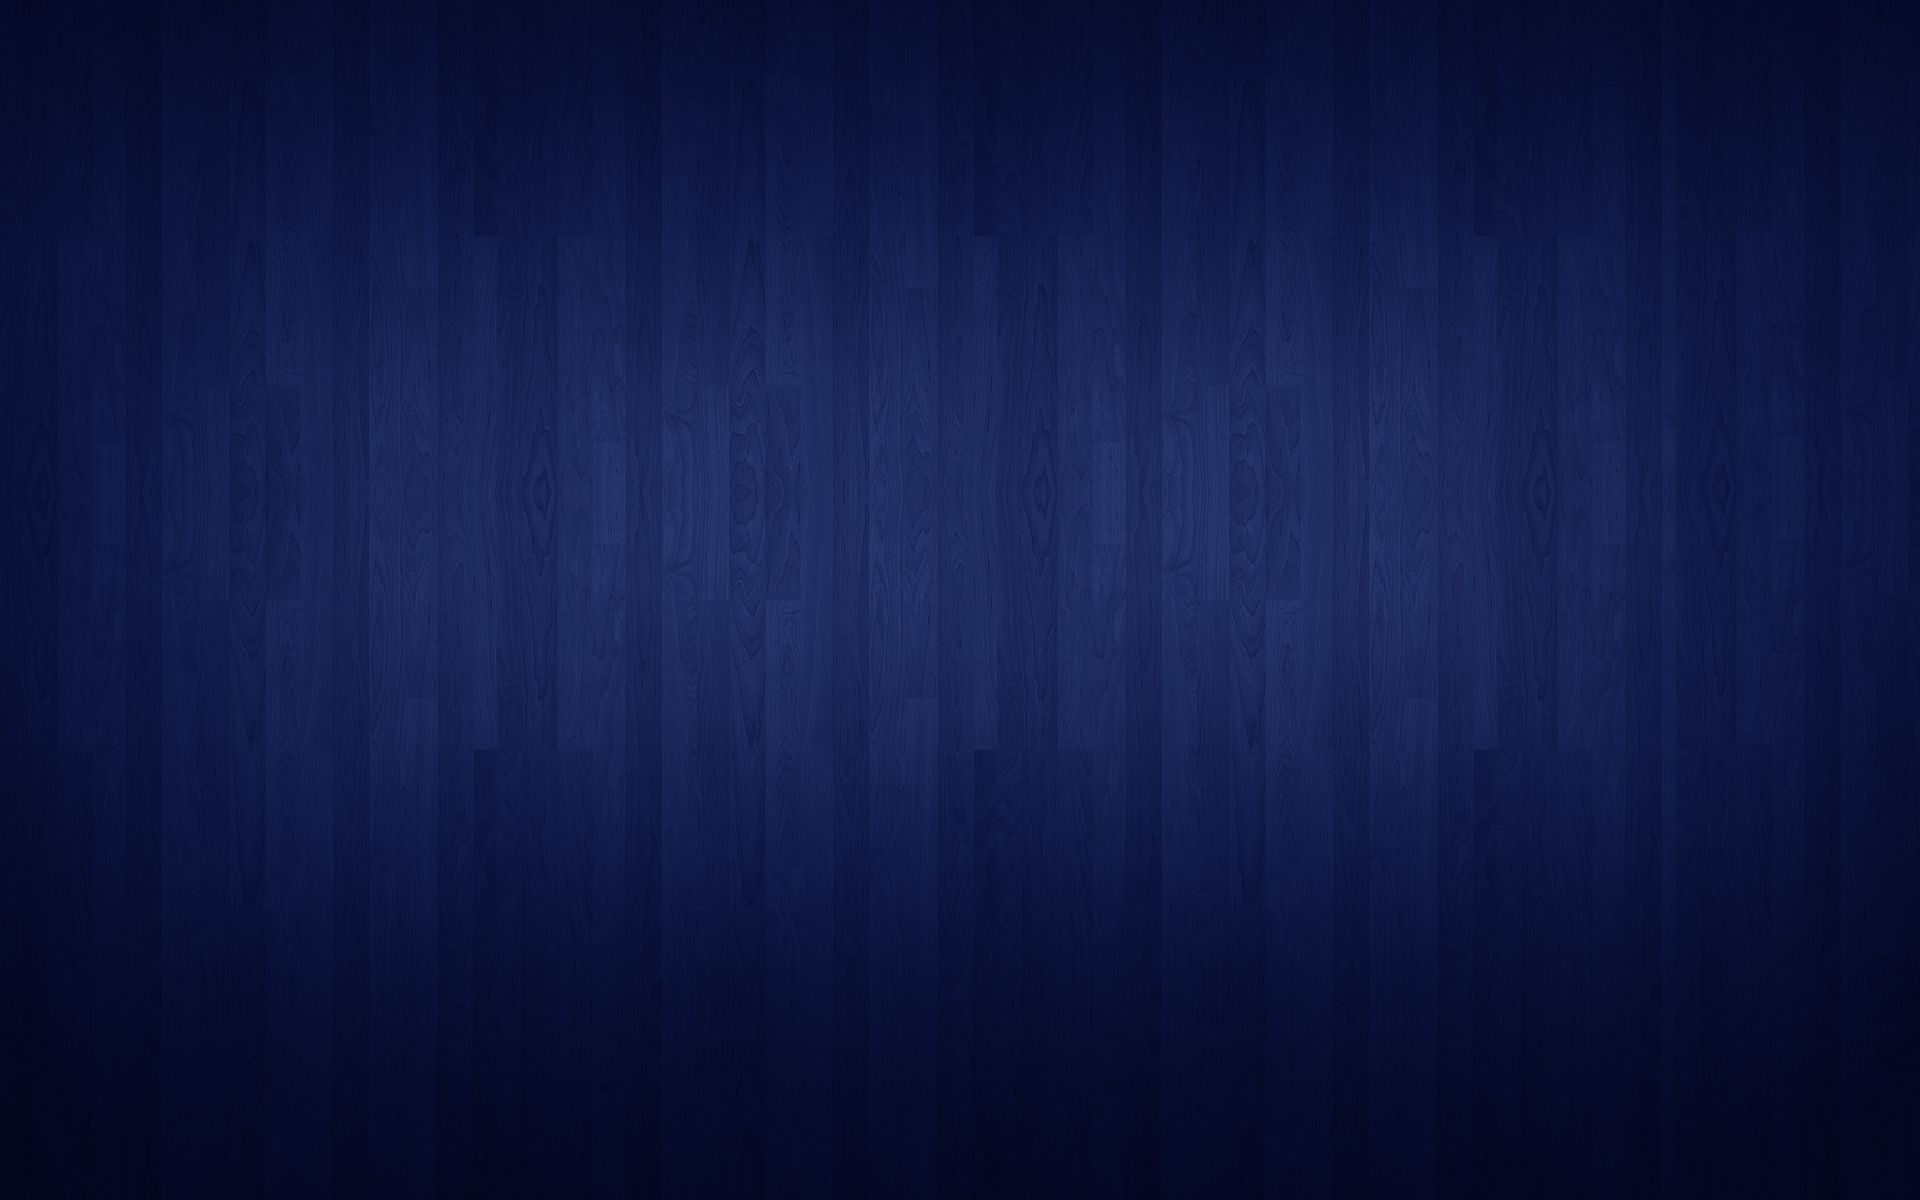 Pin by Jerome Ocampo on Web Design Background | Blue wallpapers, Blue background wallpapers ...